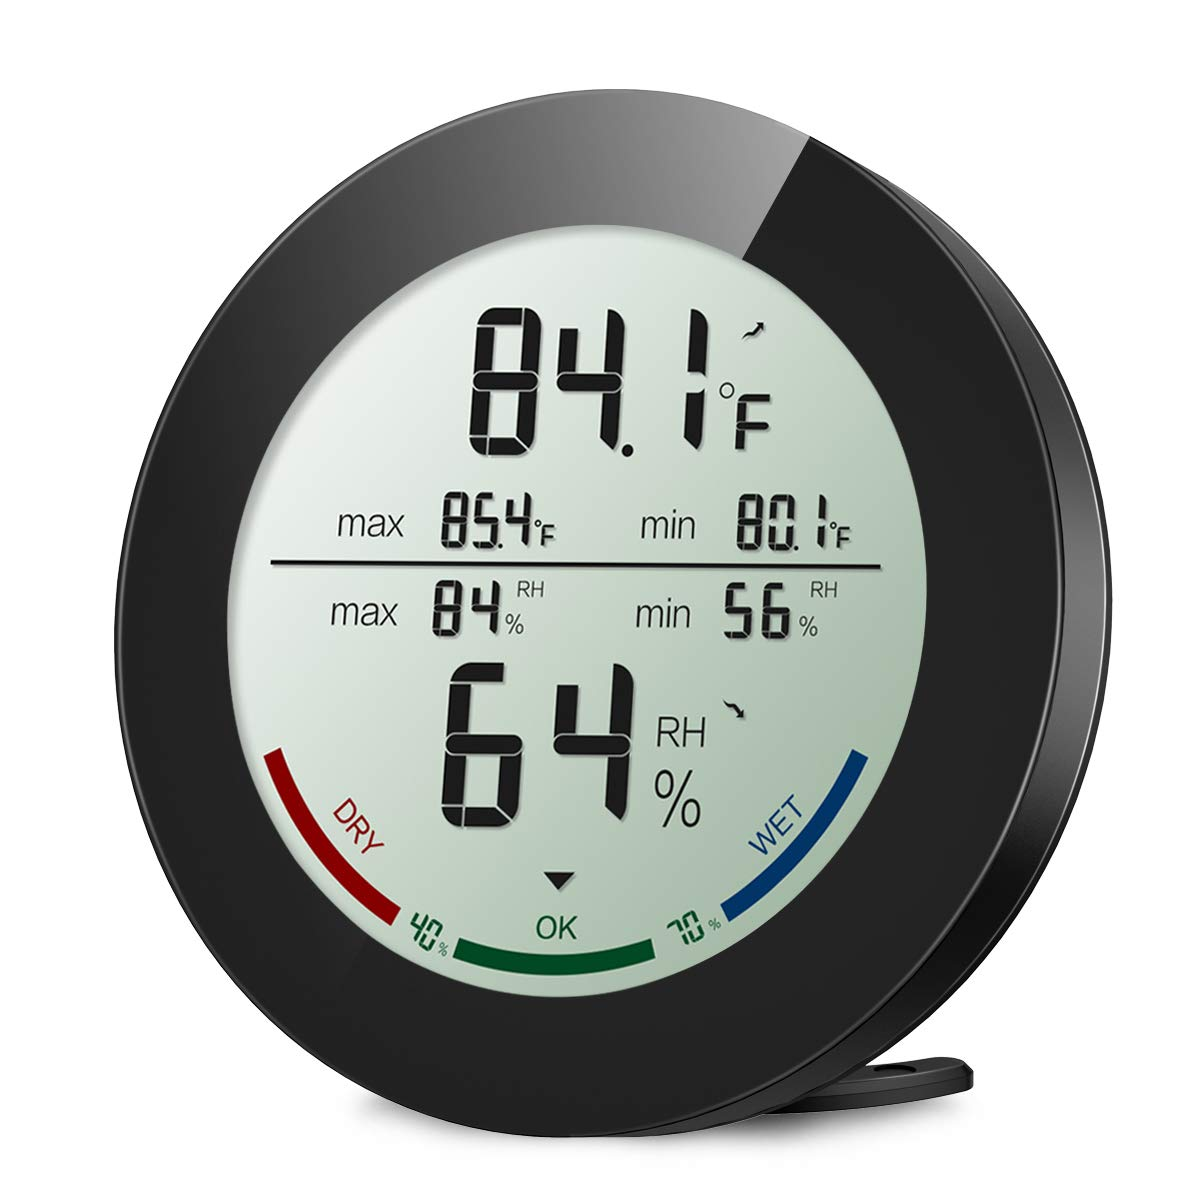 ORIA Indoor Hygrometer Thermometer, Digital Humidity Monitor, Temperature Humidity Gauge Meter, with 2.5 Inches LCD Display, Min and Max Records, for Home, Office, Greenhouse, Babyroom, Black by ORIA